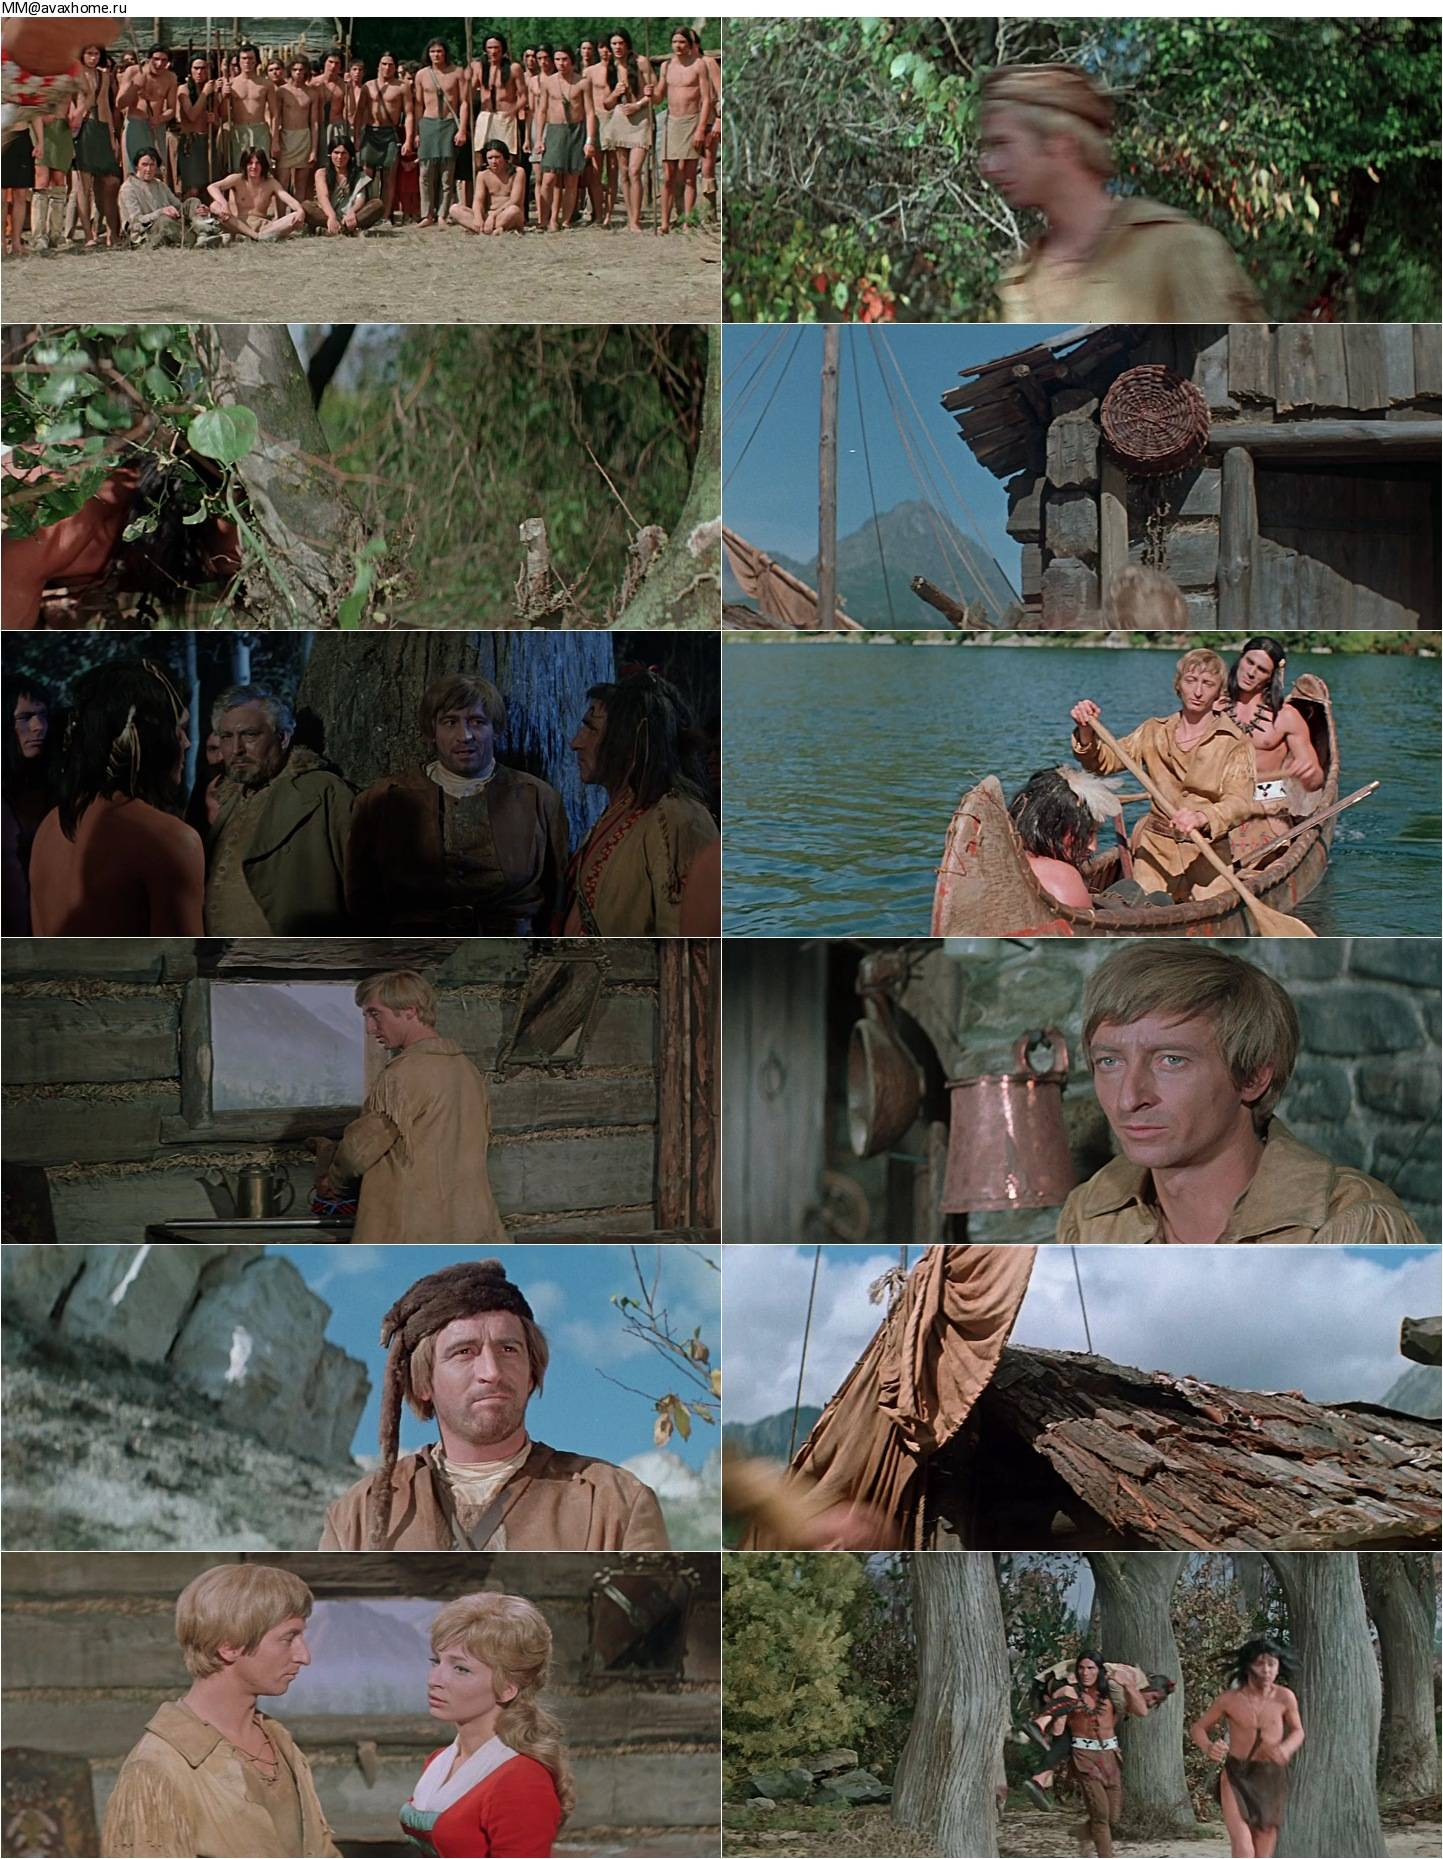 Chingachgook, The Great Snake (1967) Chingachgook, die grosse Schlange